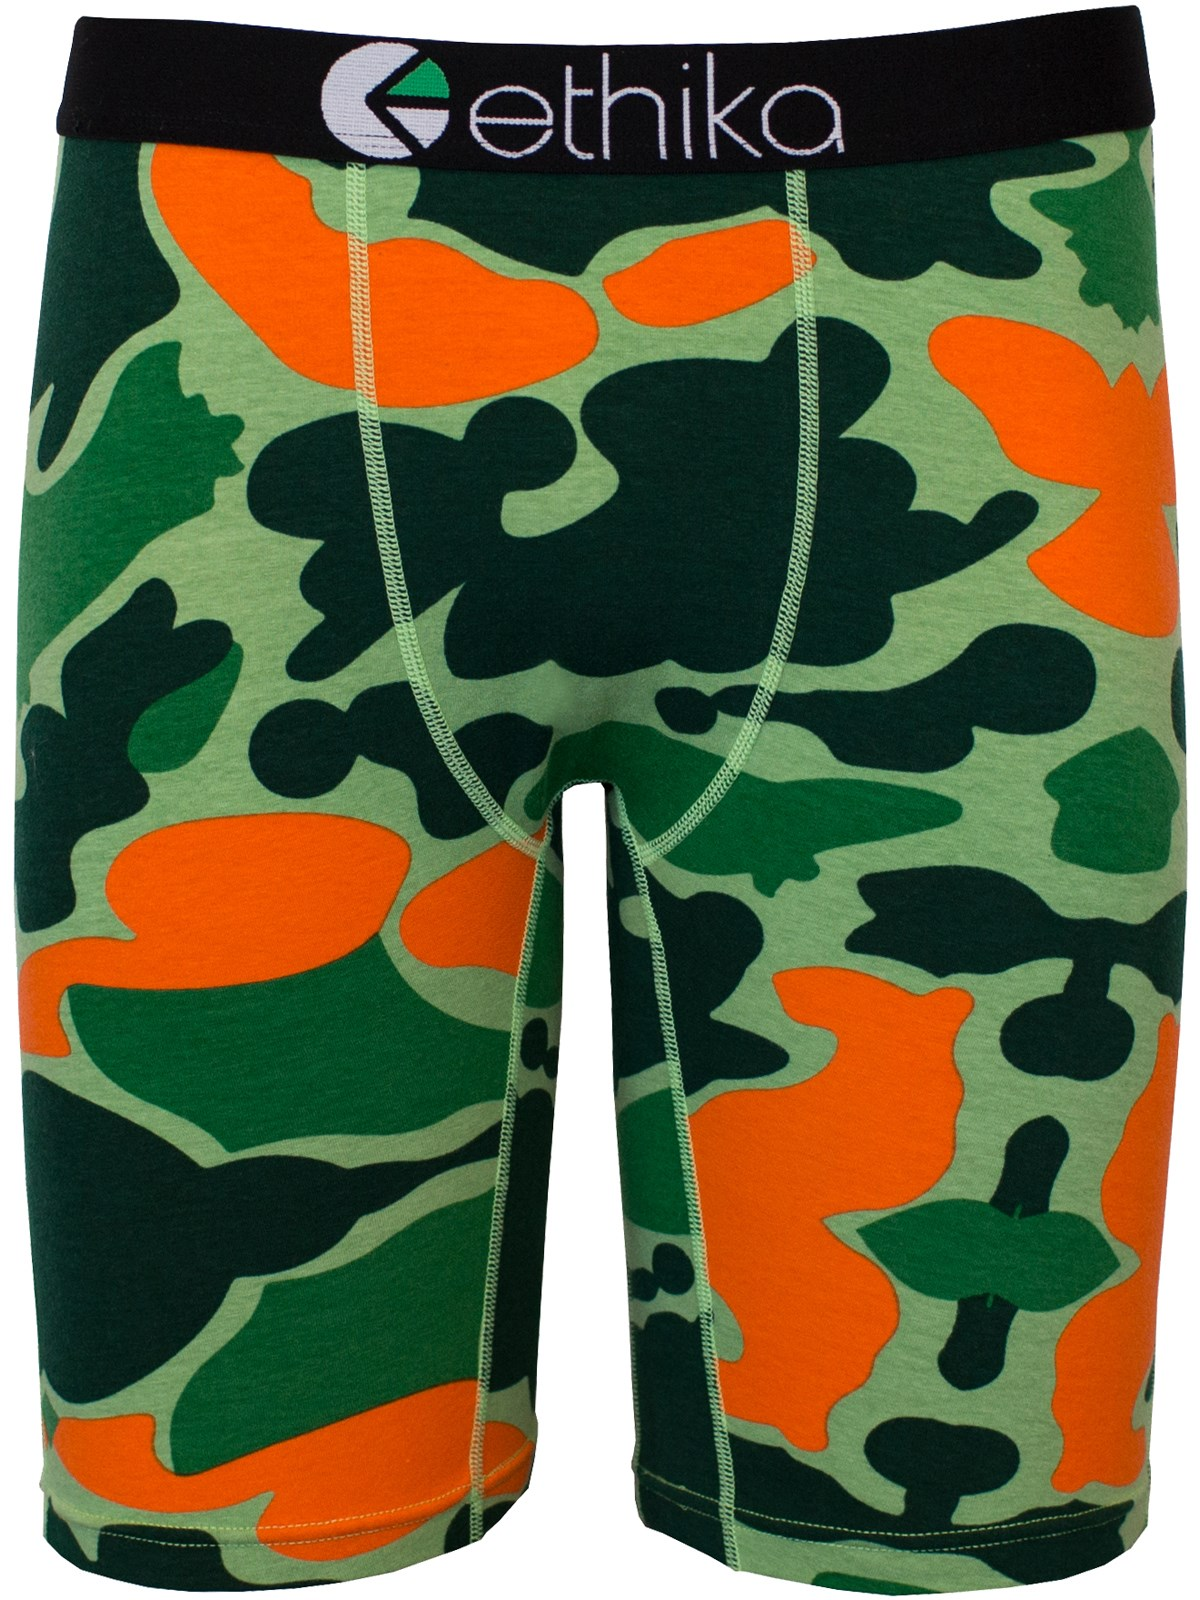 Ethika Peas&carrots-Green/orange